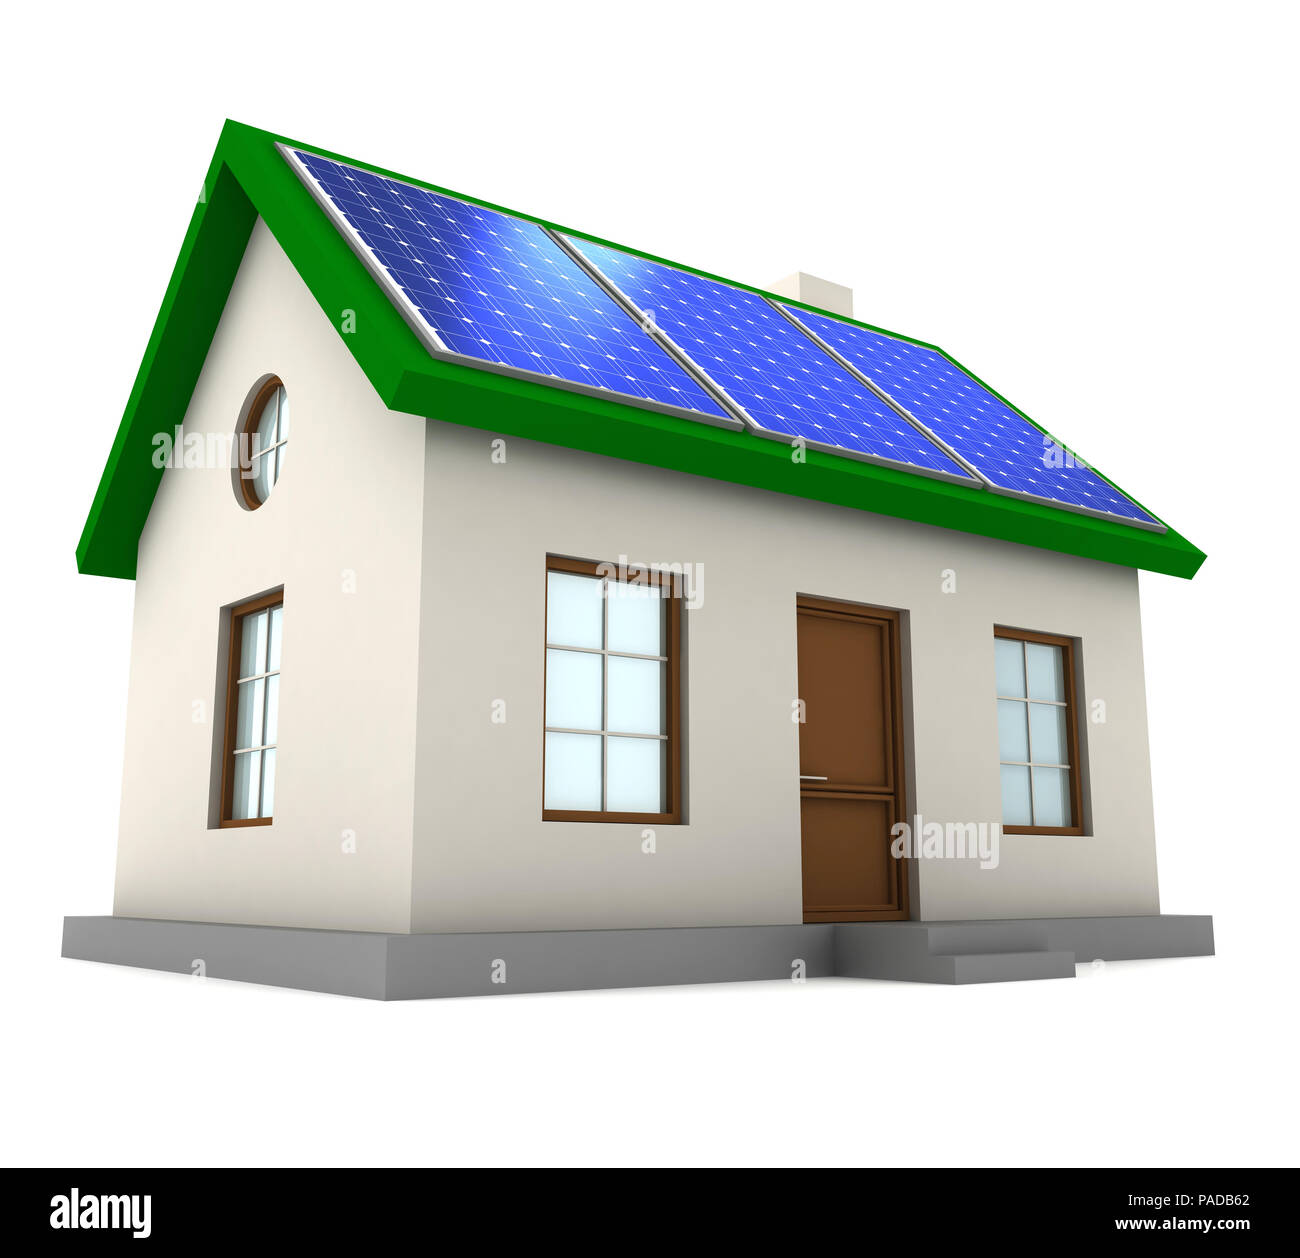 house with solar panel concept 3d illustration - Stock Image